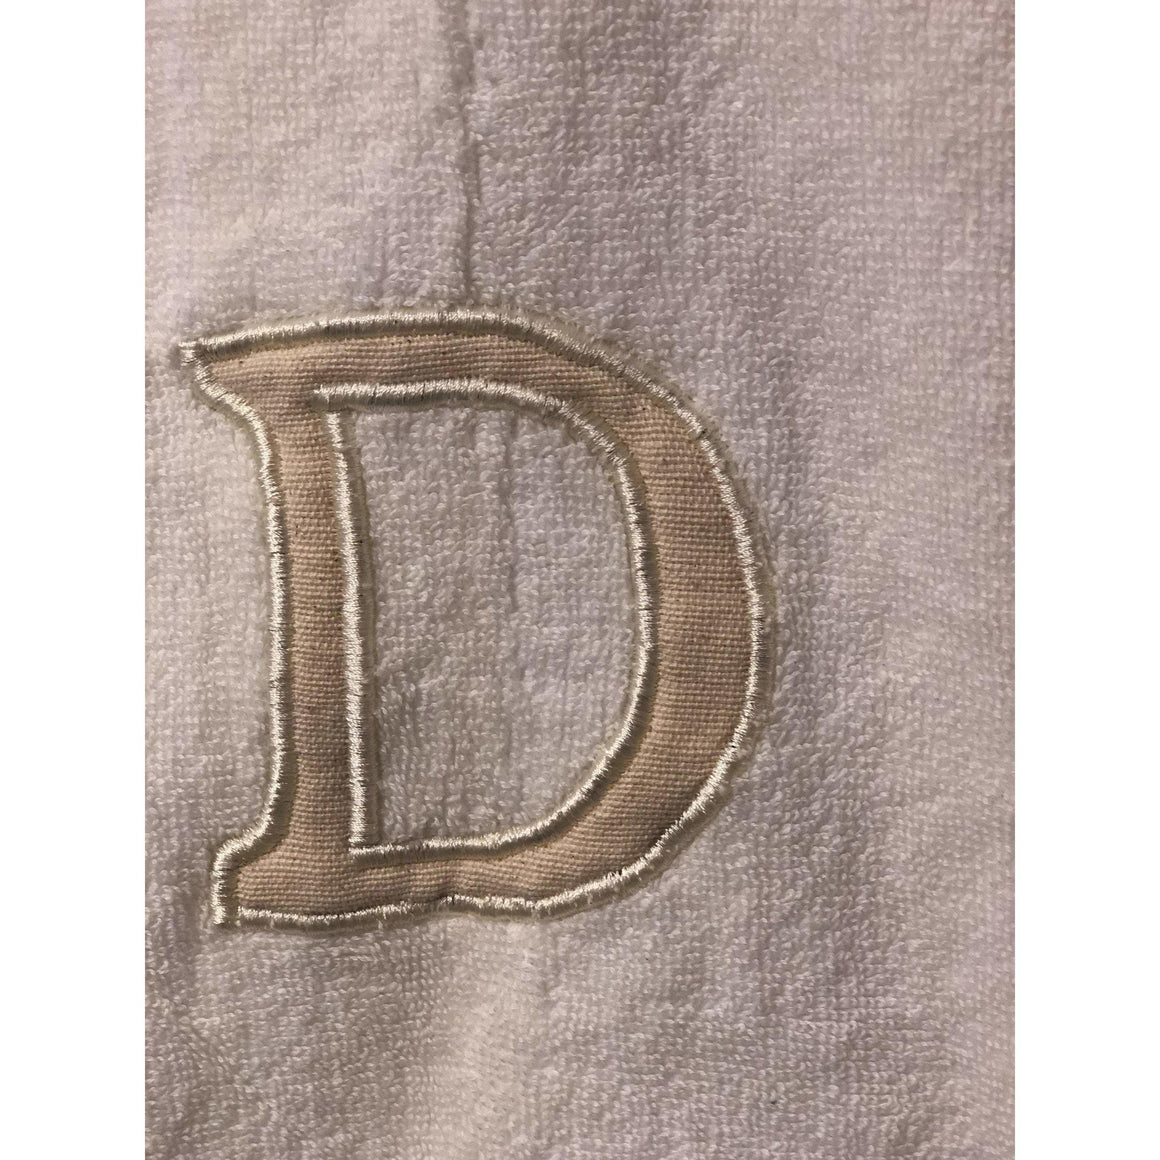 Monogrammed Cotton Face Towels,Personalized Towel, Bridesmaid Gift